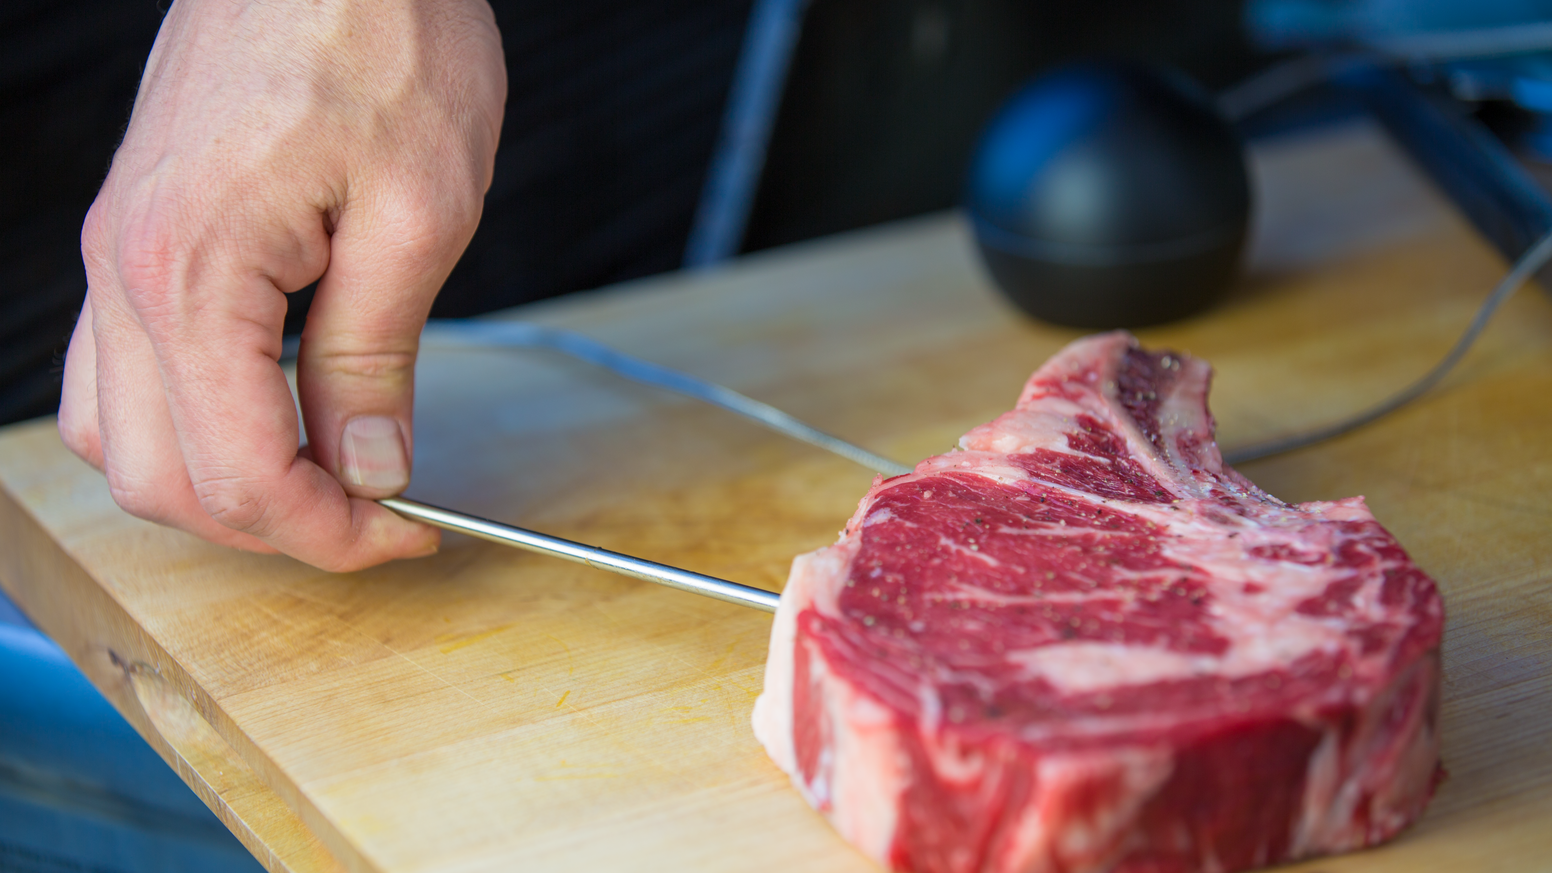 The world's most advanced meat thermometer delivers cooking perfection and mobile notifications.